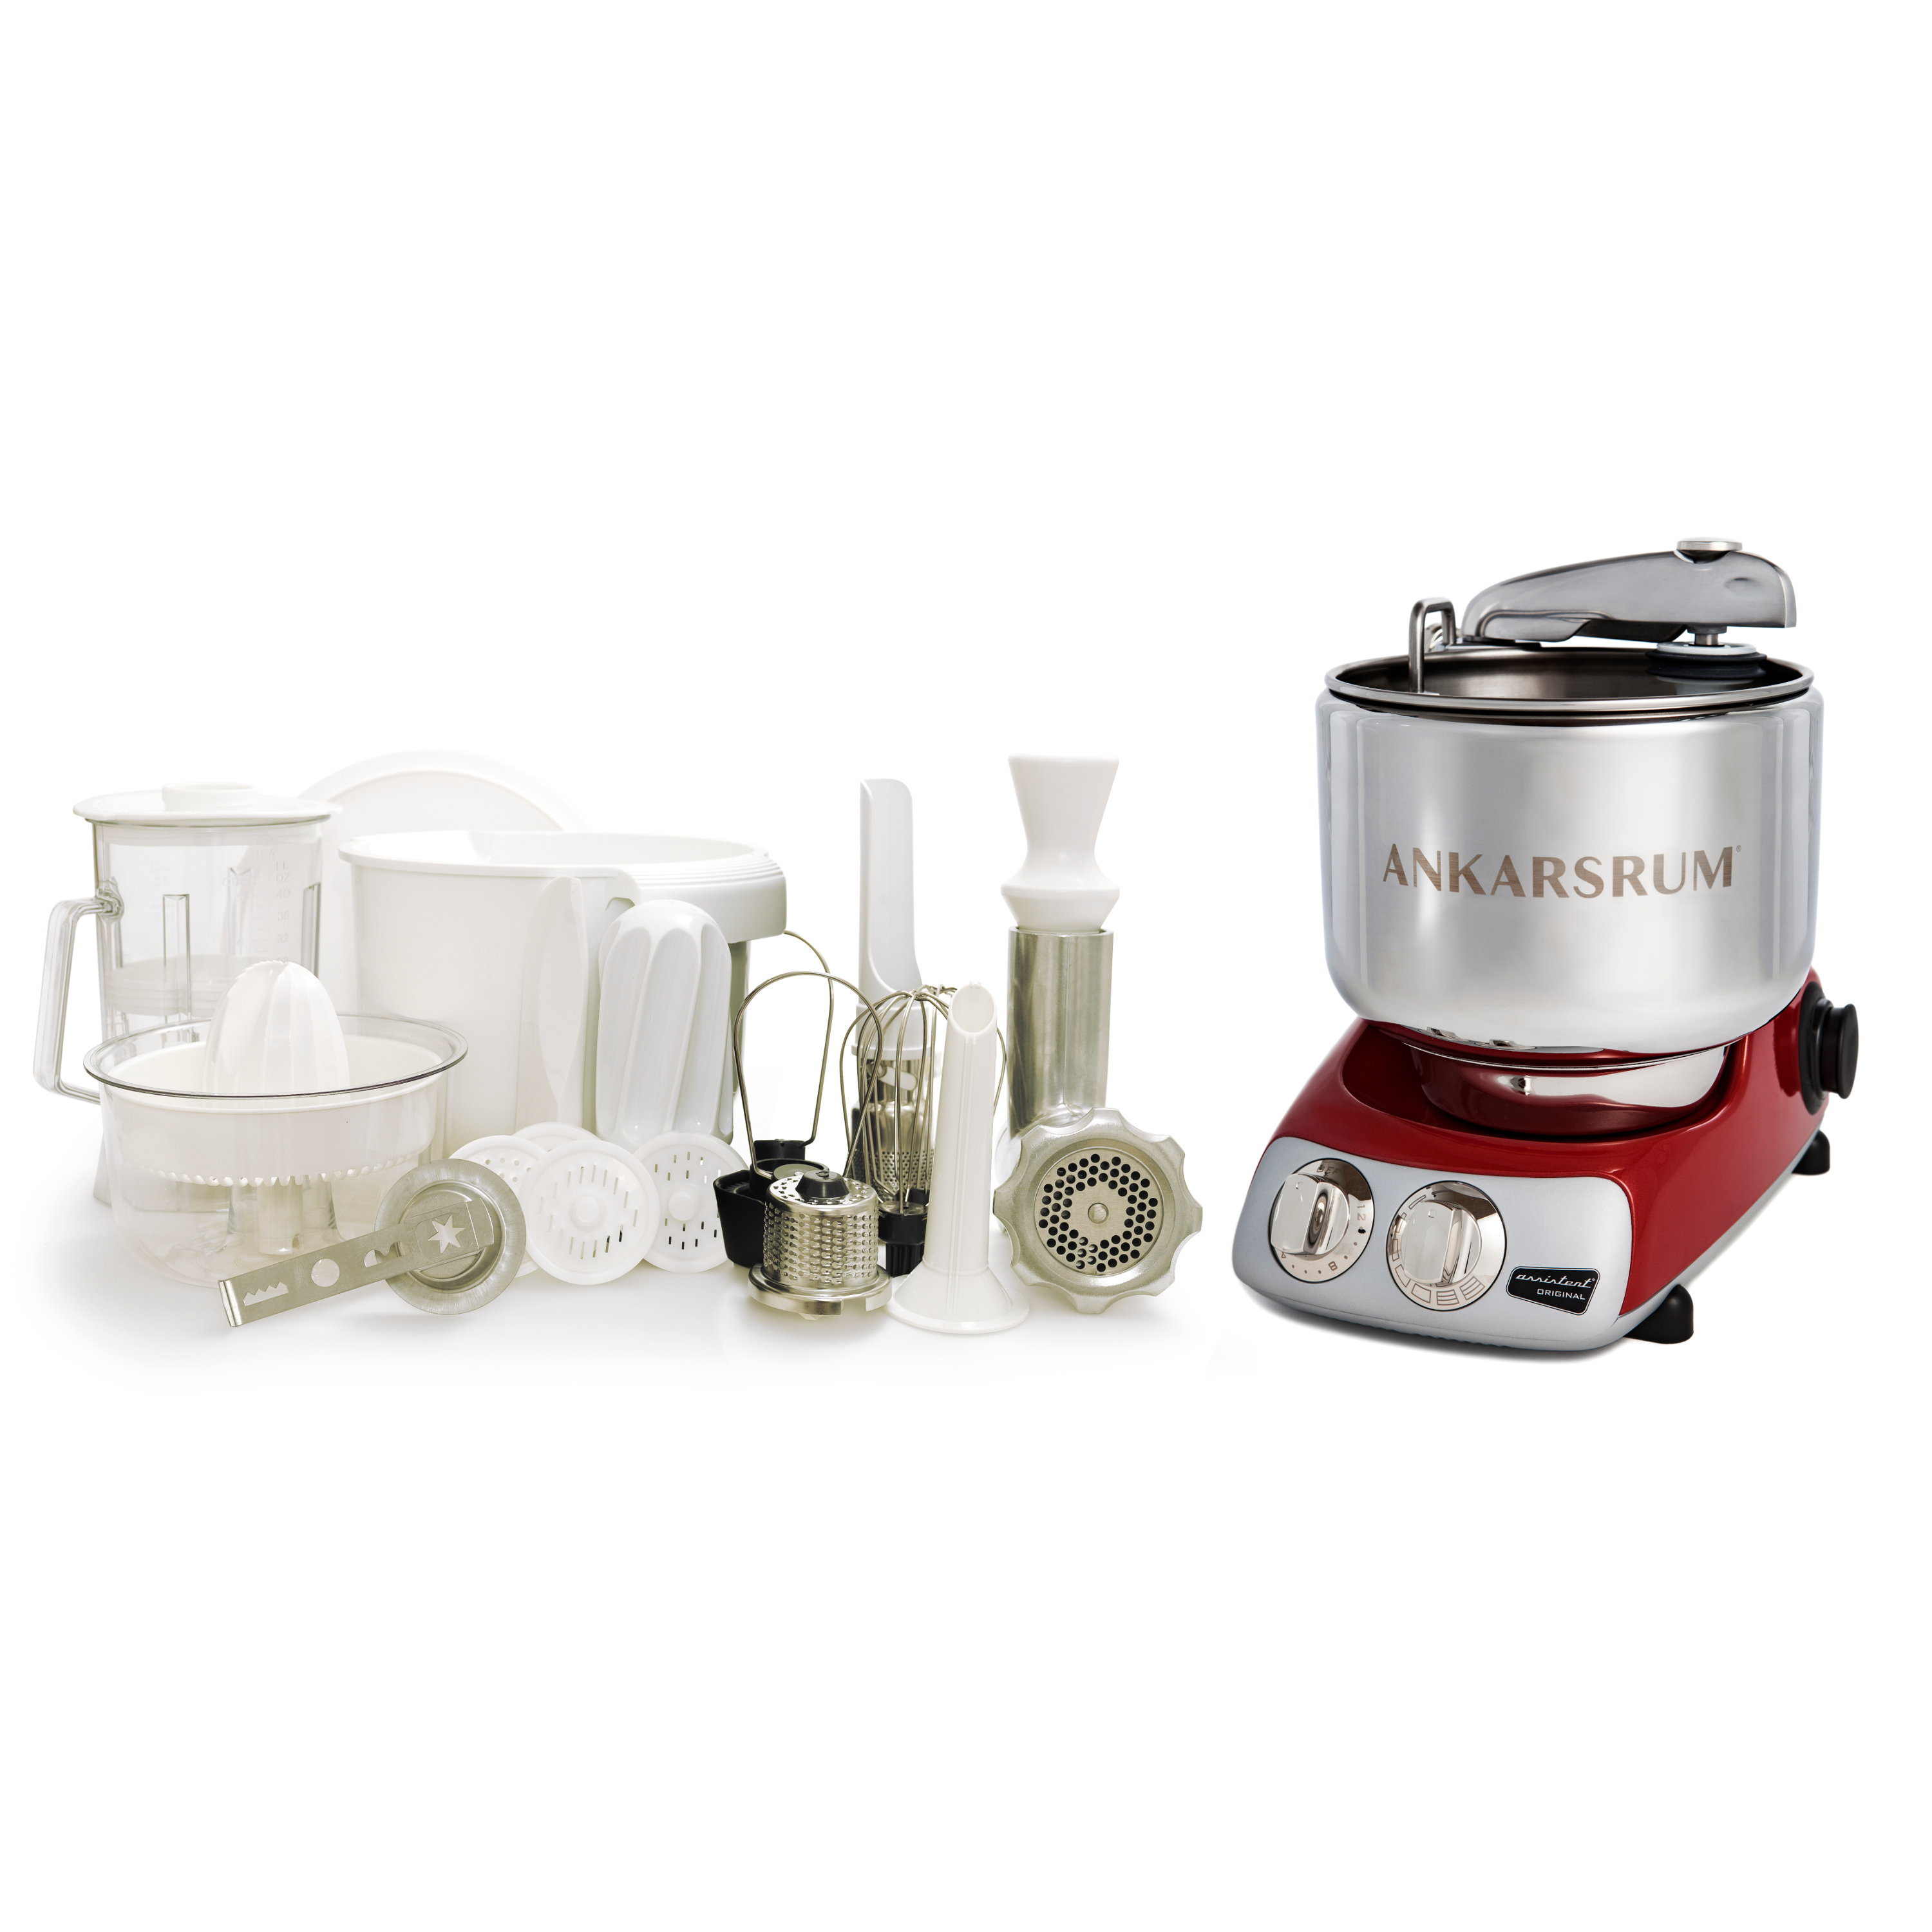 Ankarsrum Original AKM 6290 Red Stand Mixer Deluxe Package